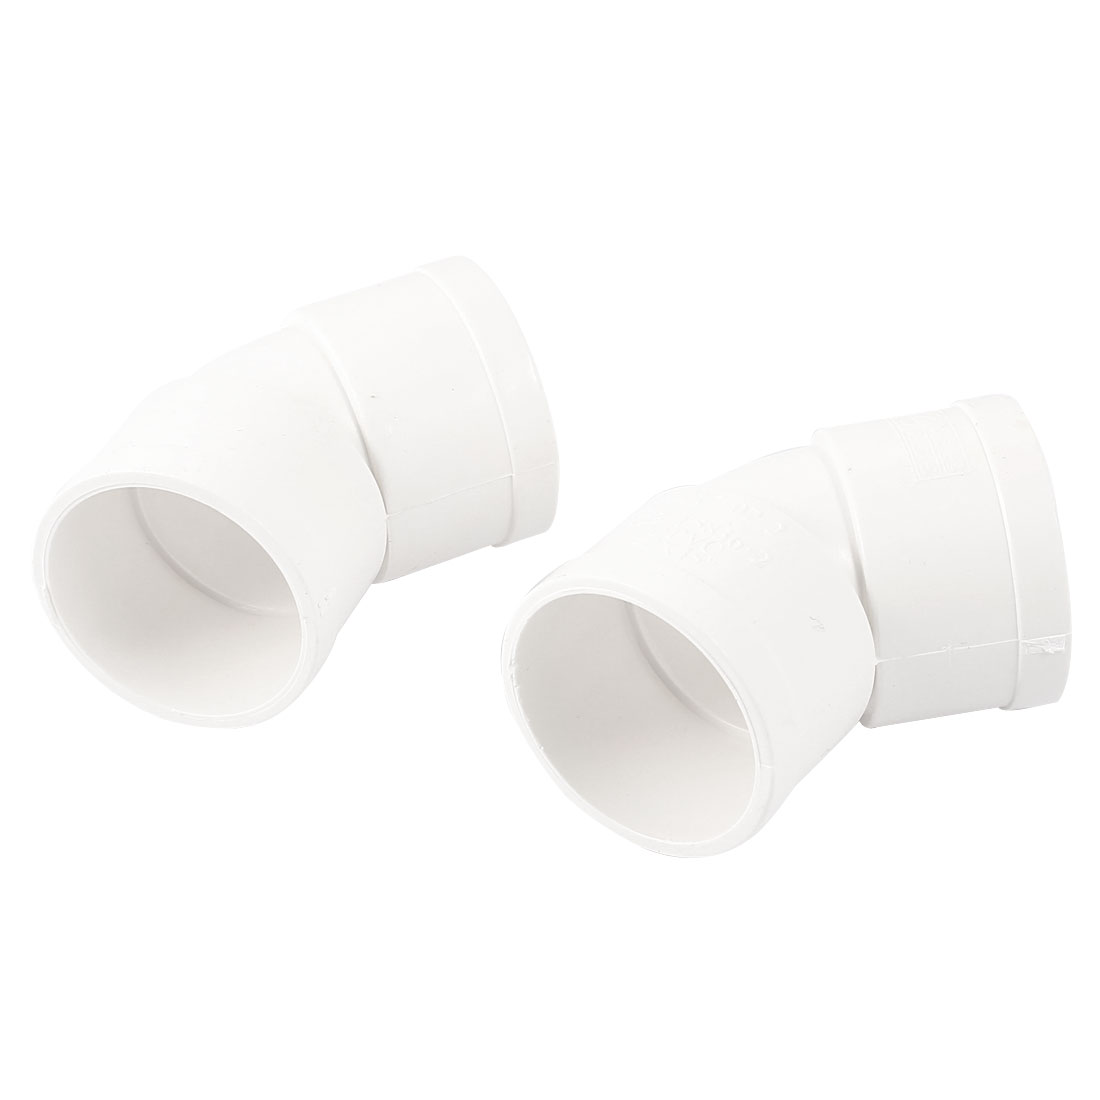 2 Pcs White PVC 40mm Inner Dia 45 Degree Design Pipe Hose Connector